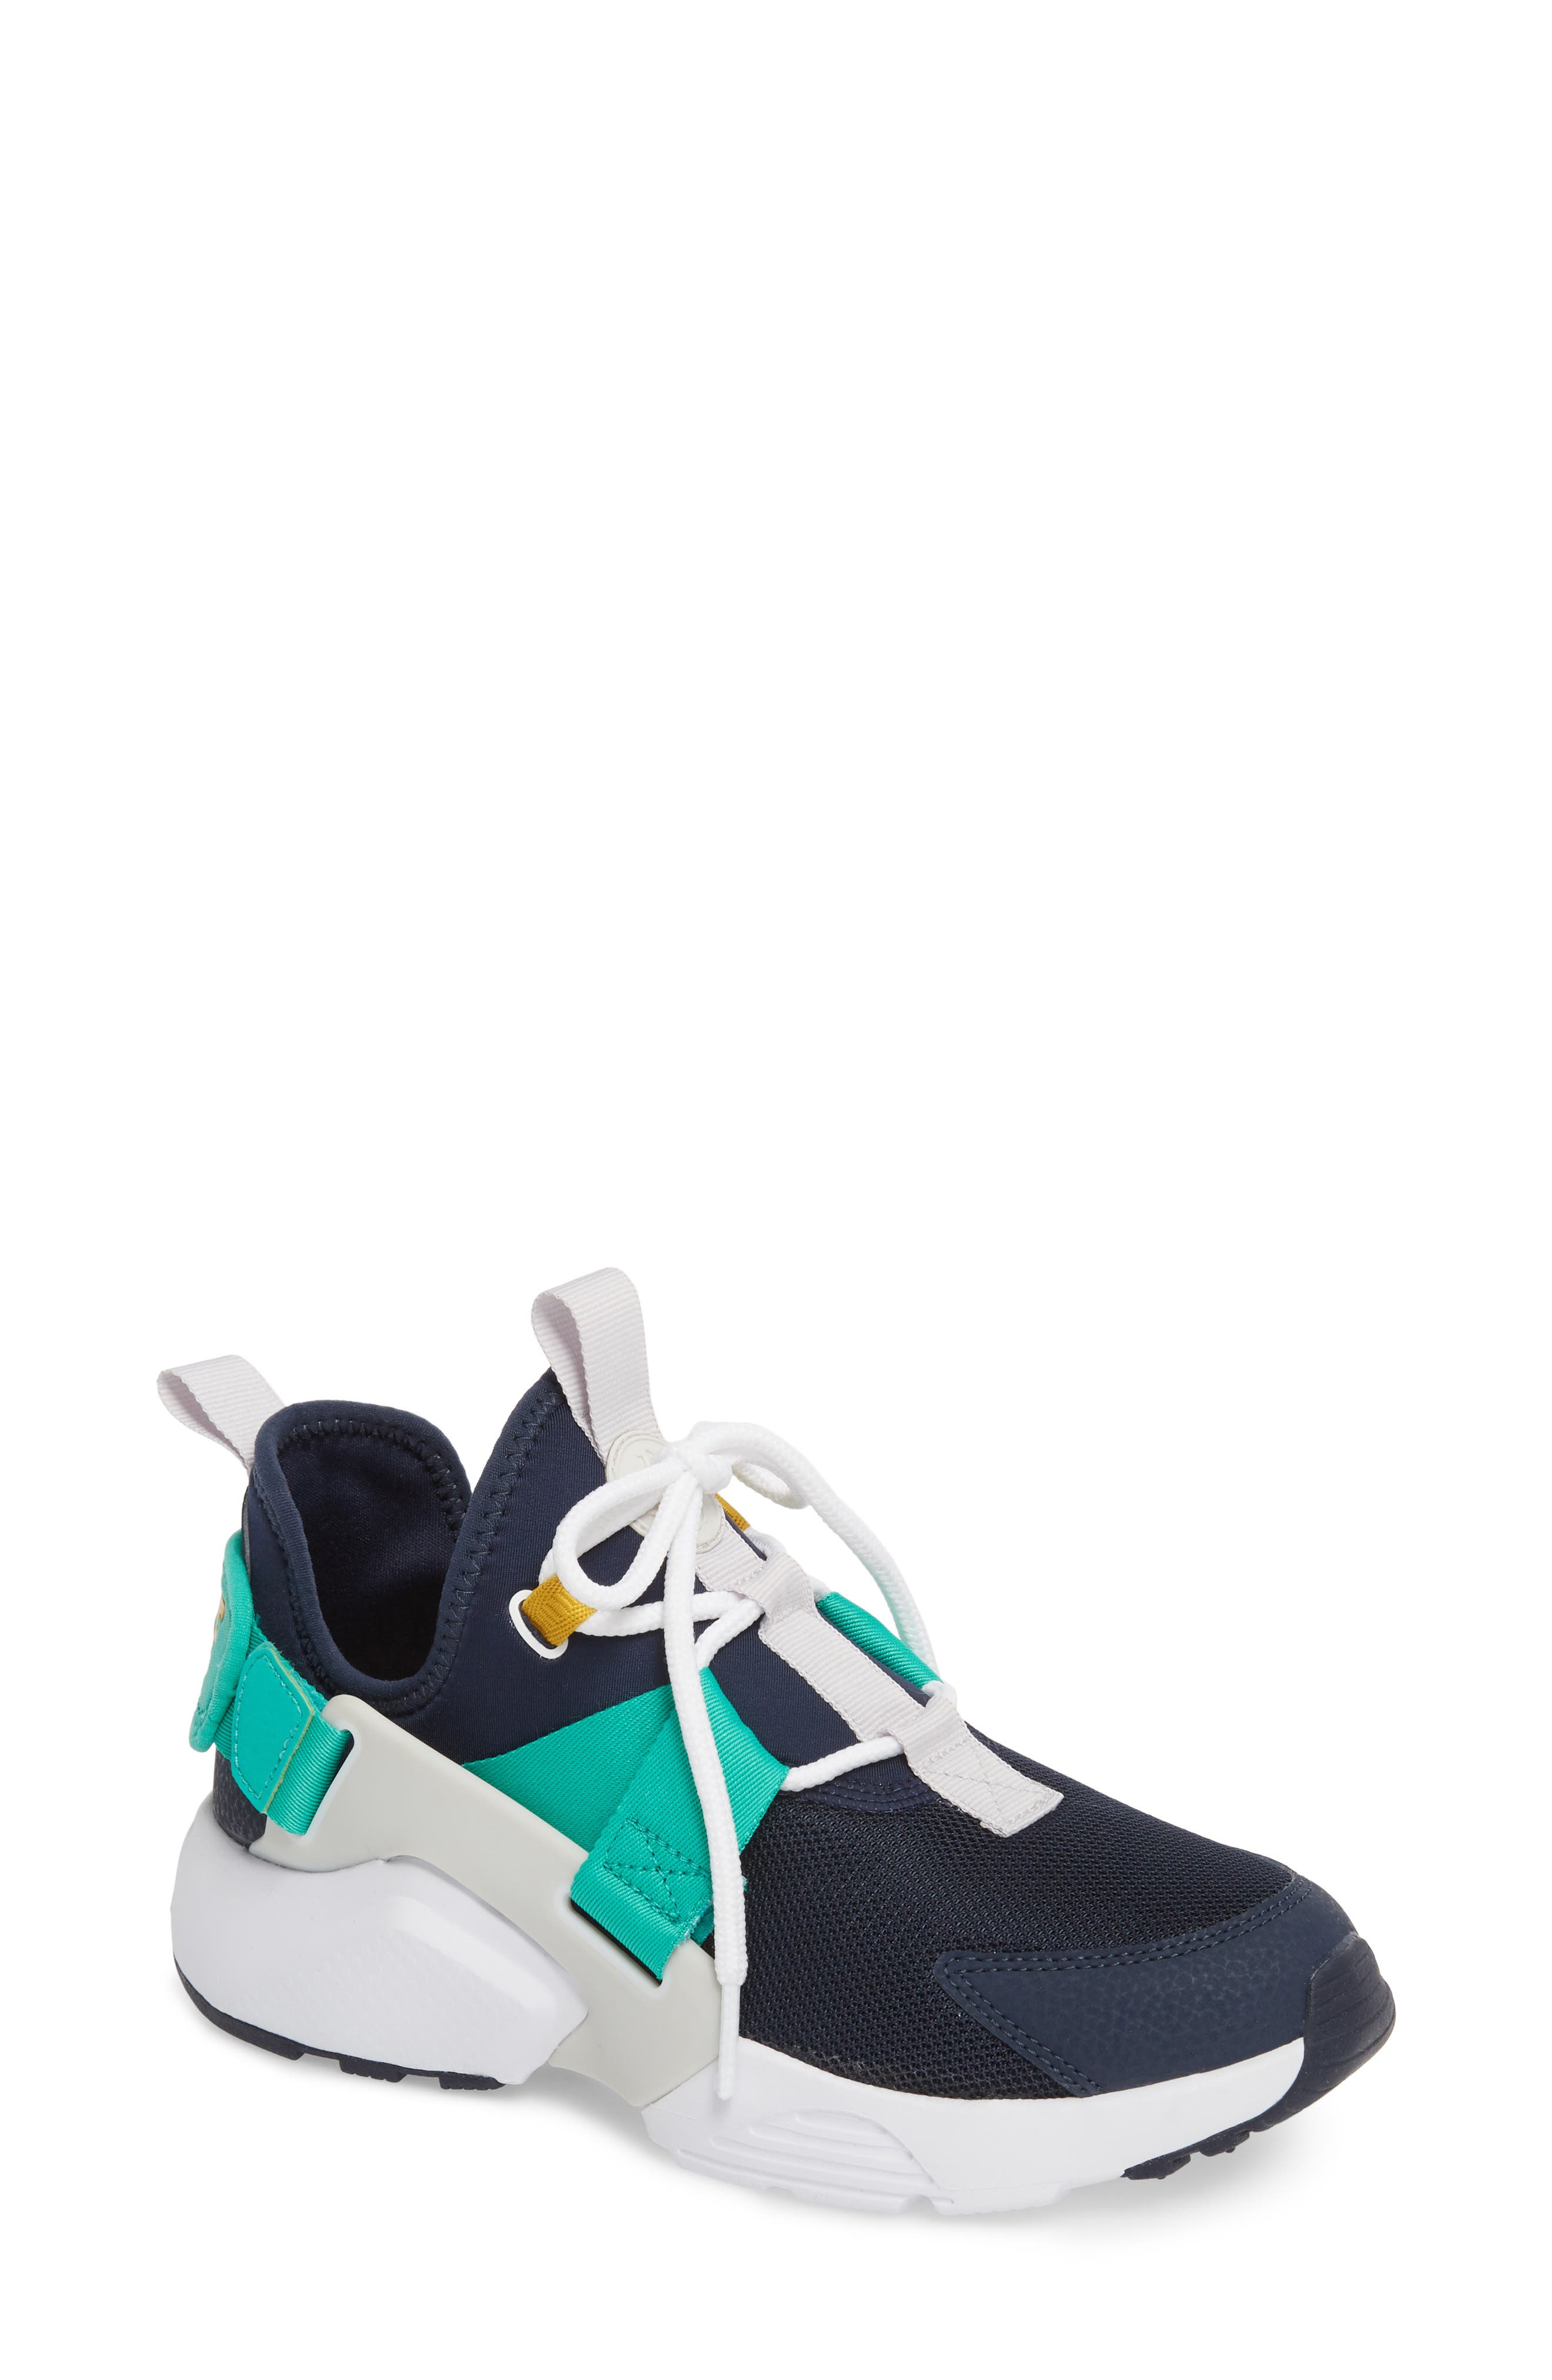 Air Huarache City Low Sneaker,                         Main,                         color, Obsidian/ White/ Grey/ Green